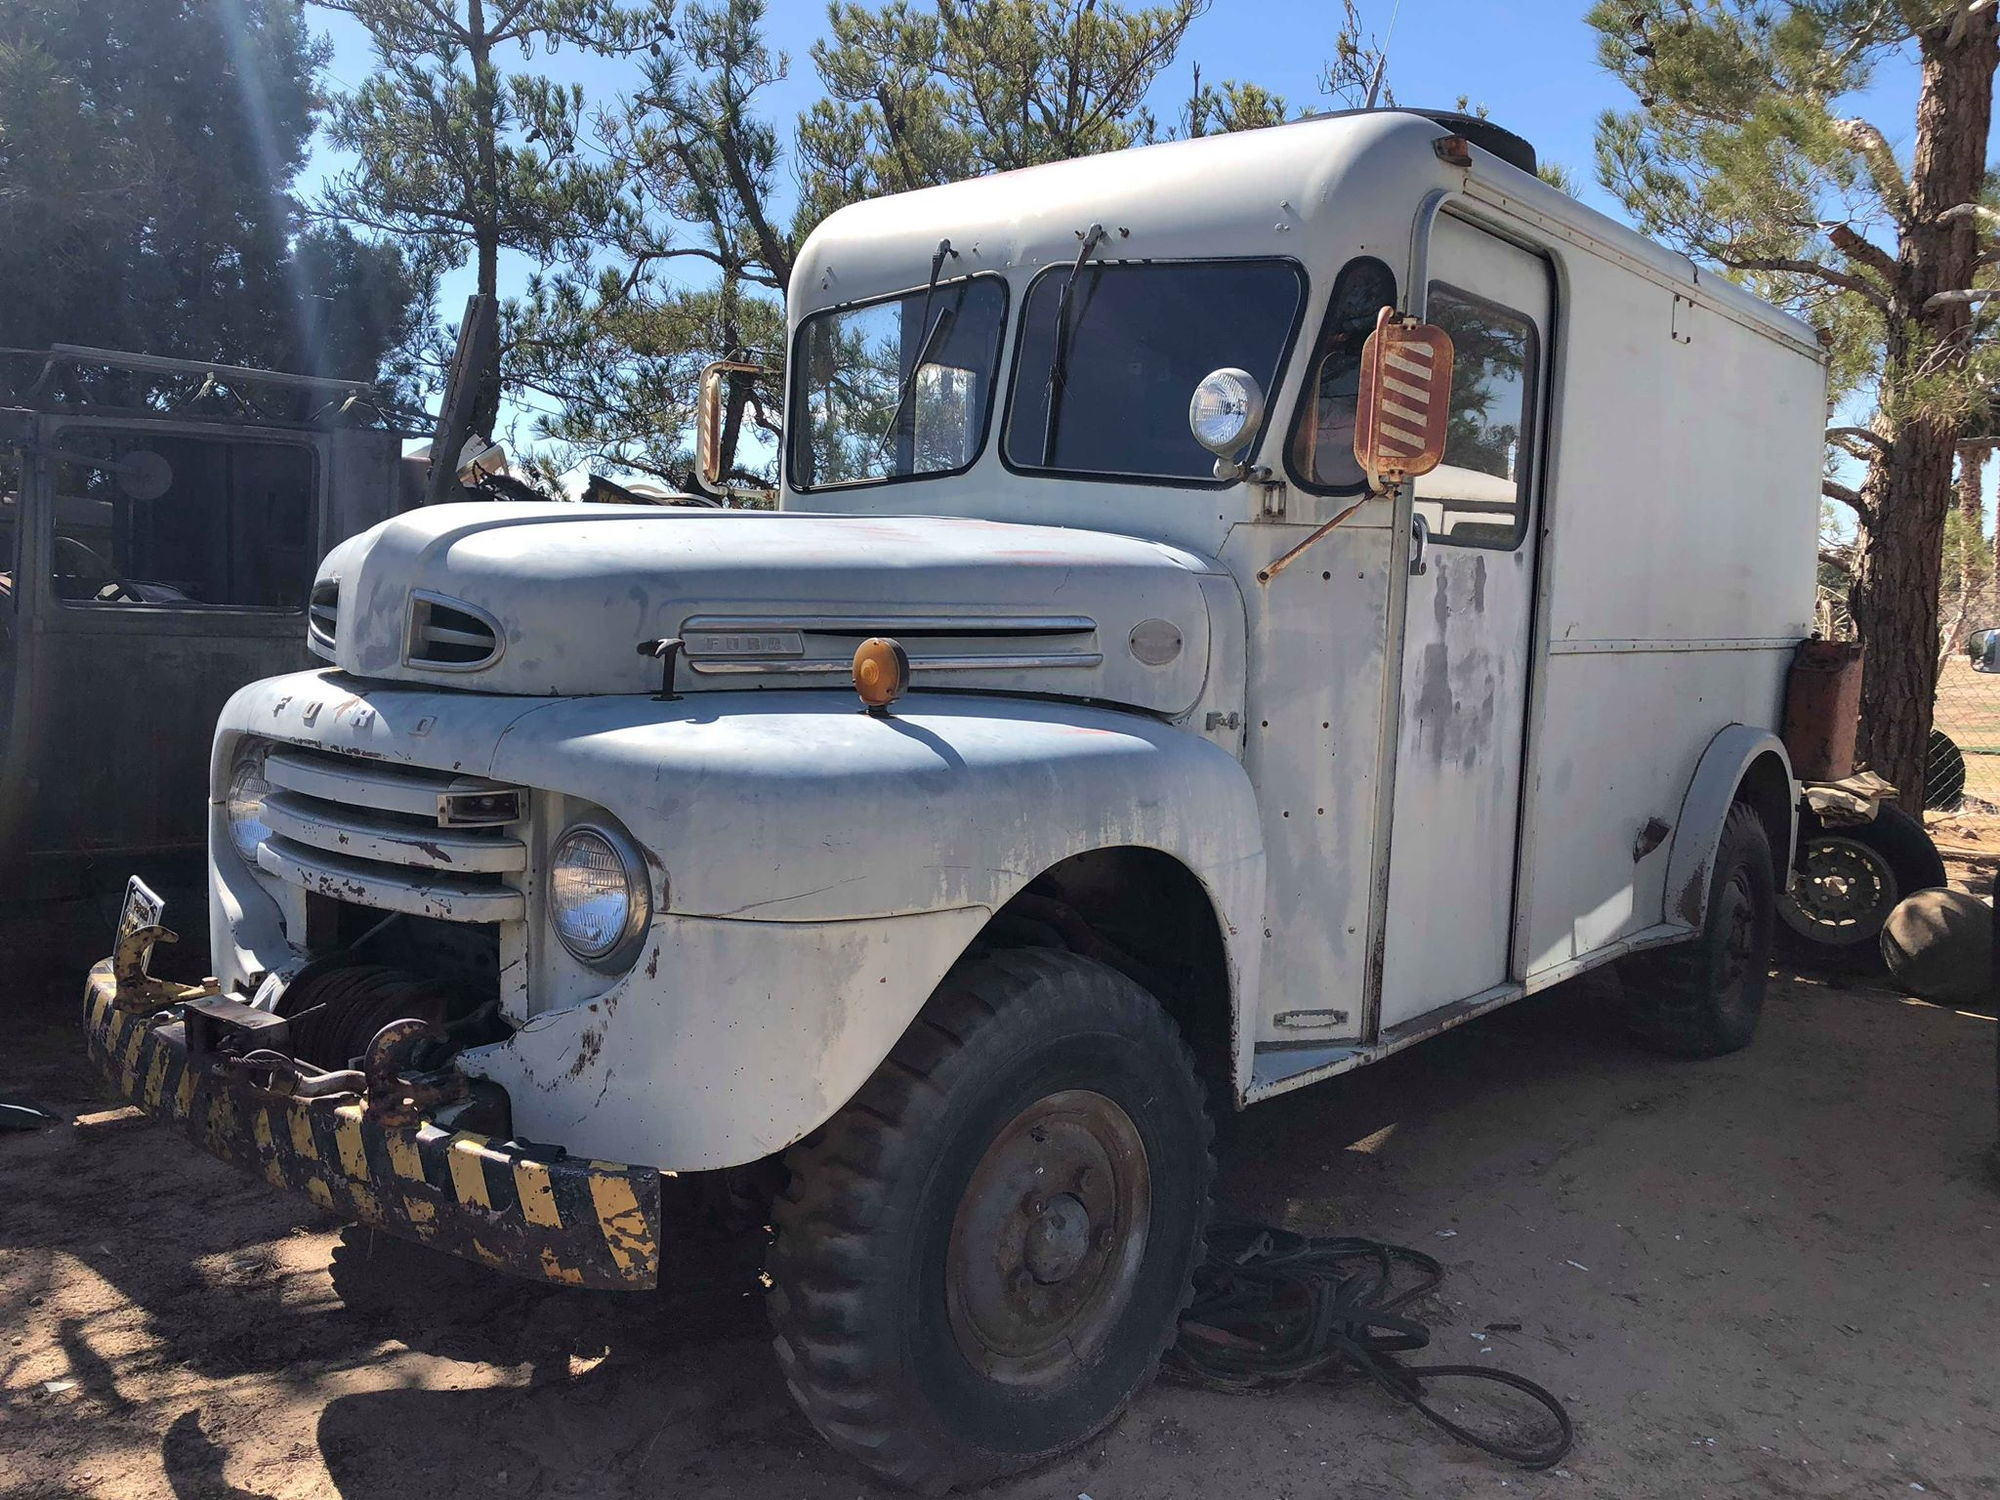 1948 Ford Herrington Step Vanhow Rare Truck Enthusiasts Grain Trying To See If Anyone Knows Anything About This Model Marmon Ive Looked All Over The Internet And Nothing